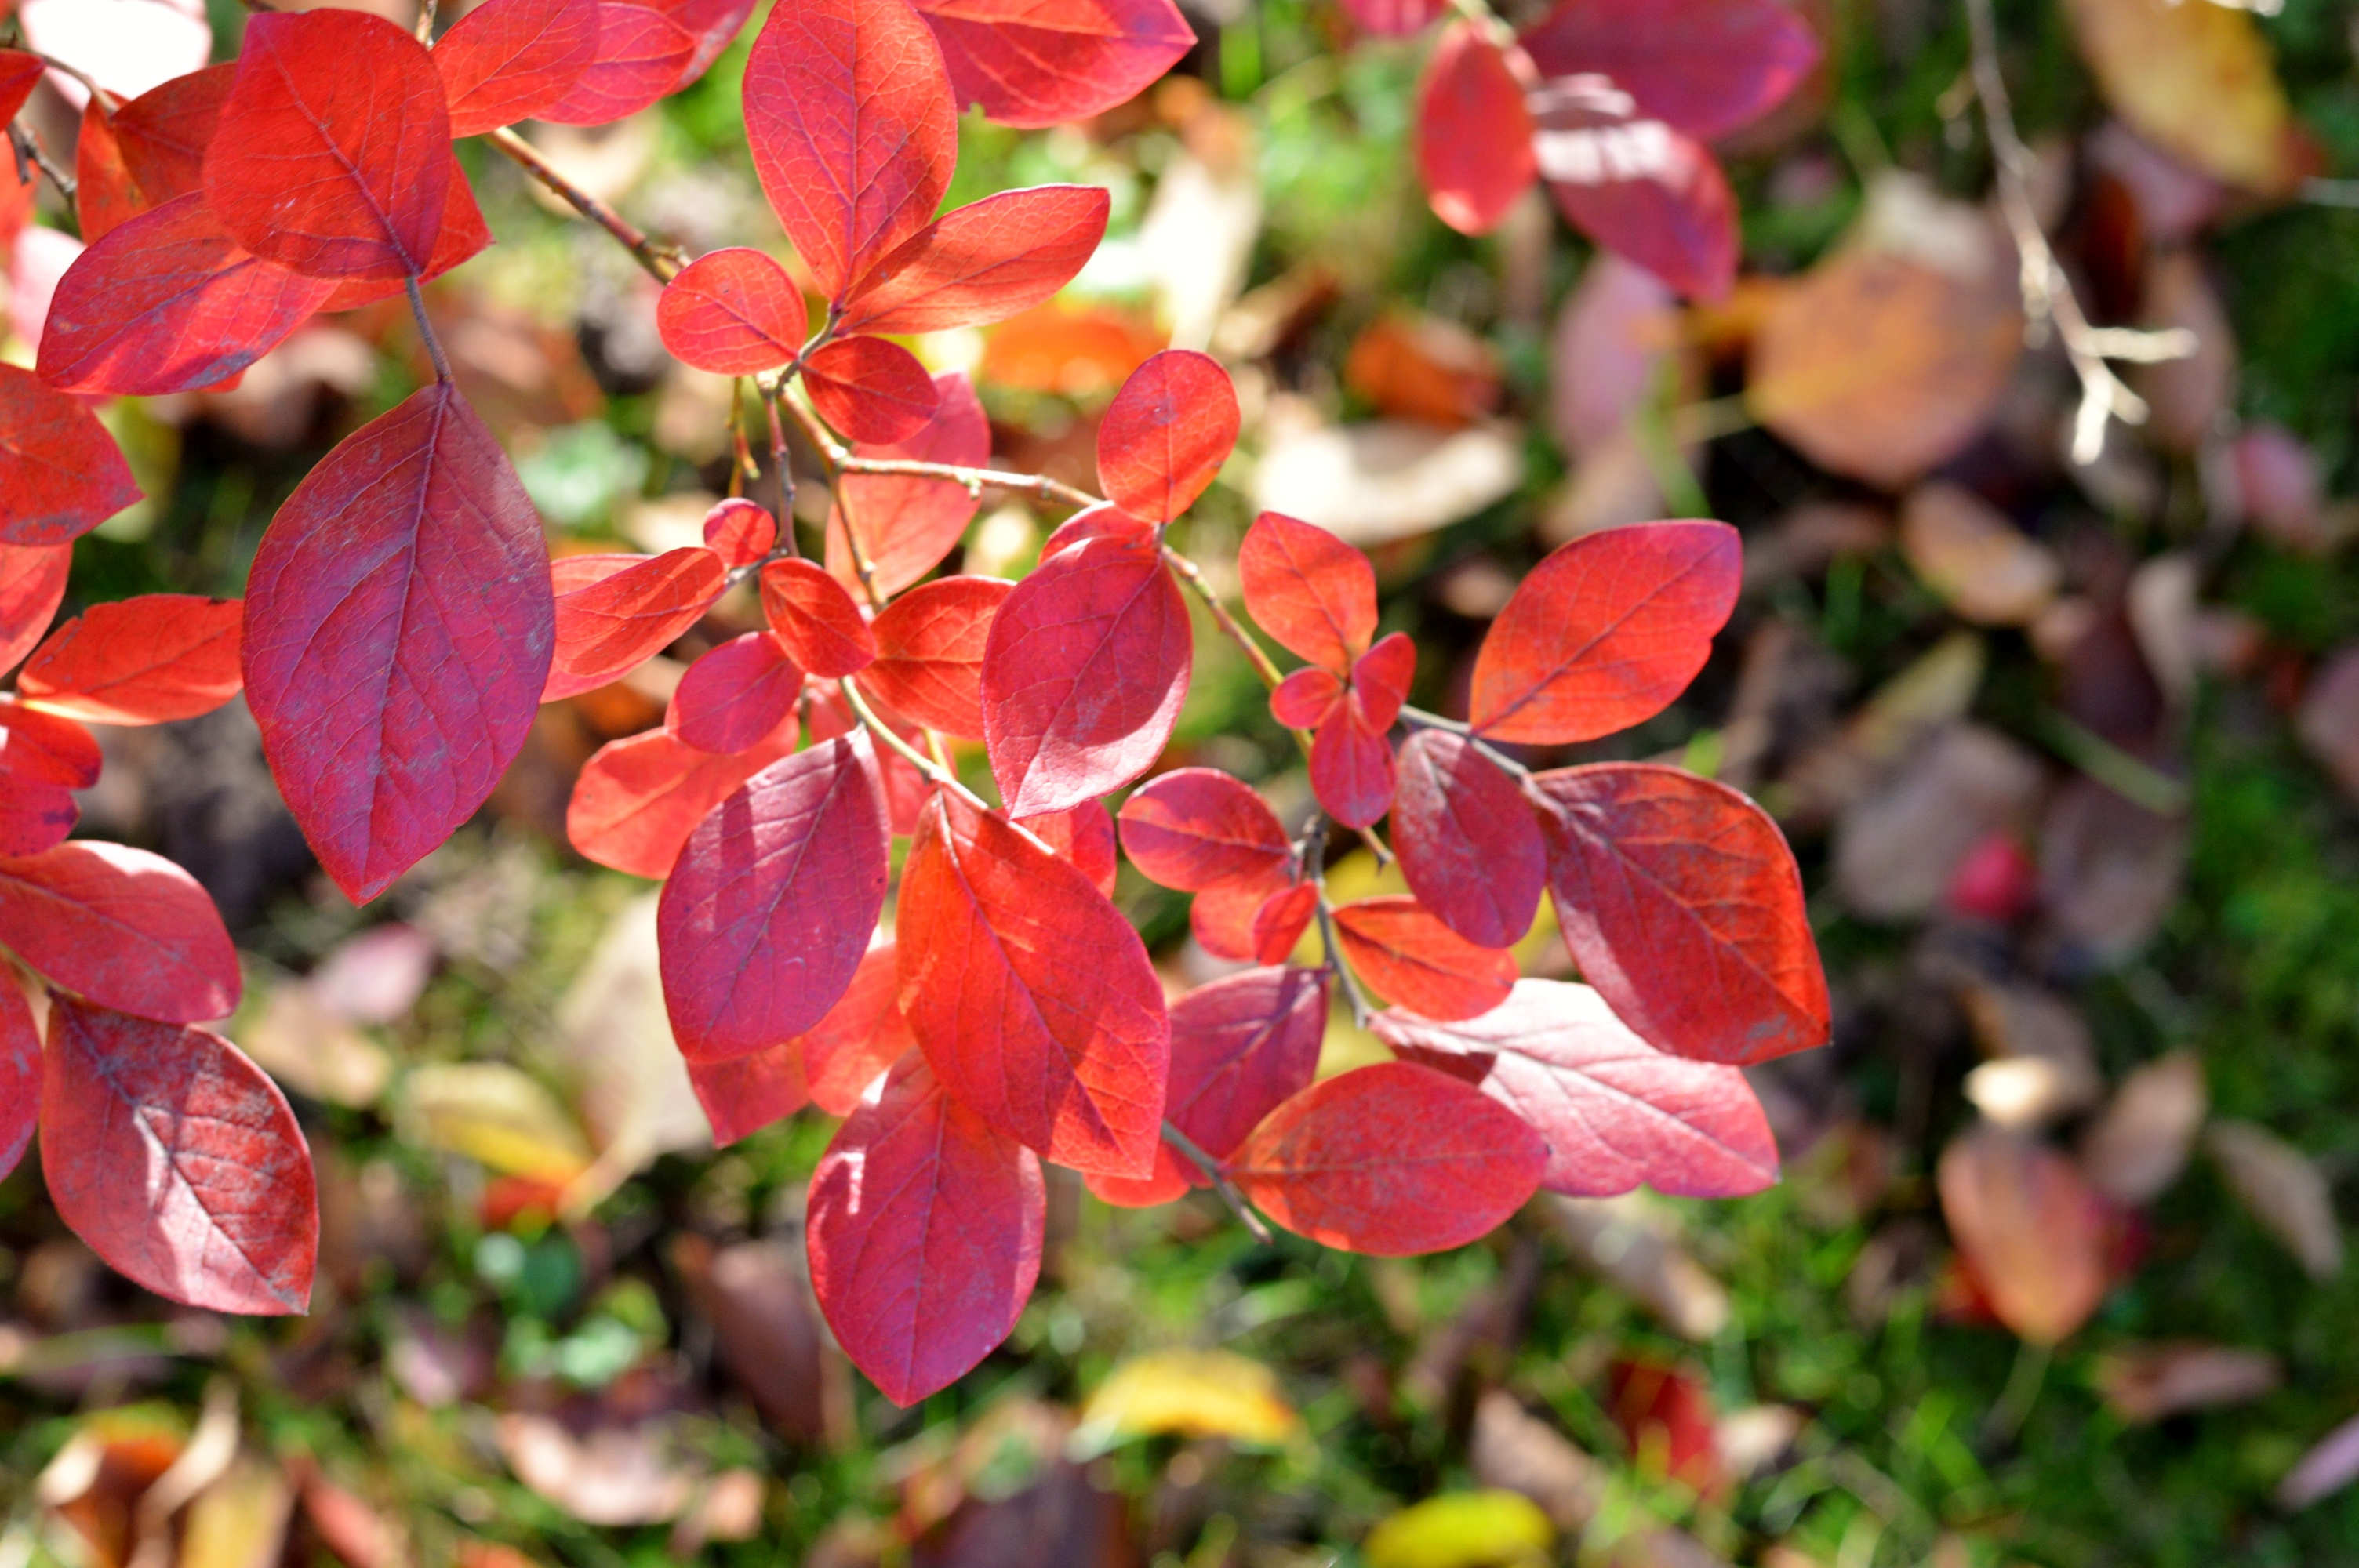 Herbstblätter, autumn leaves, momiji leaves